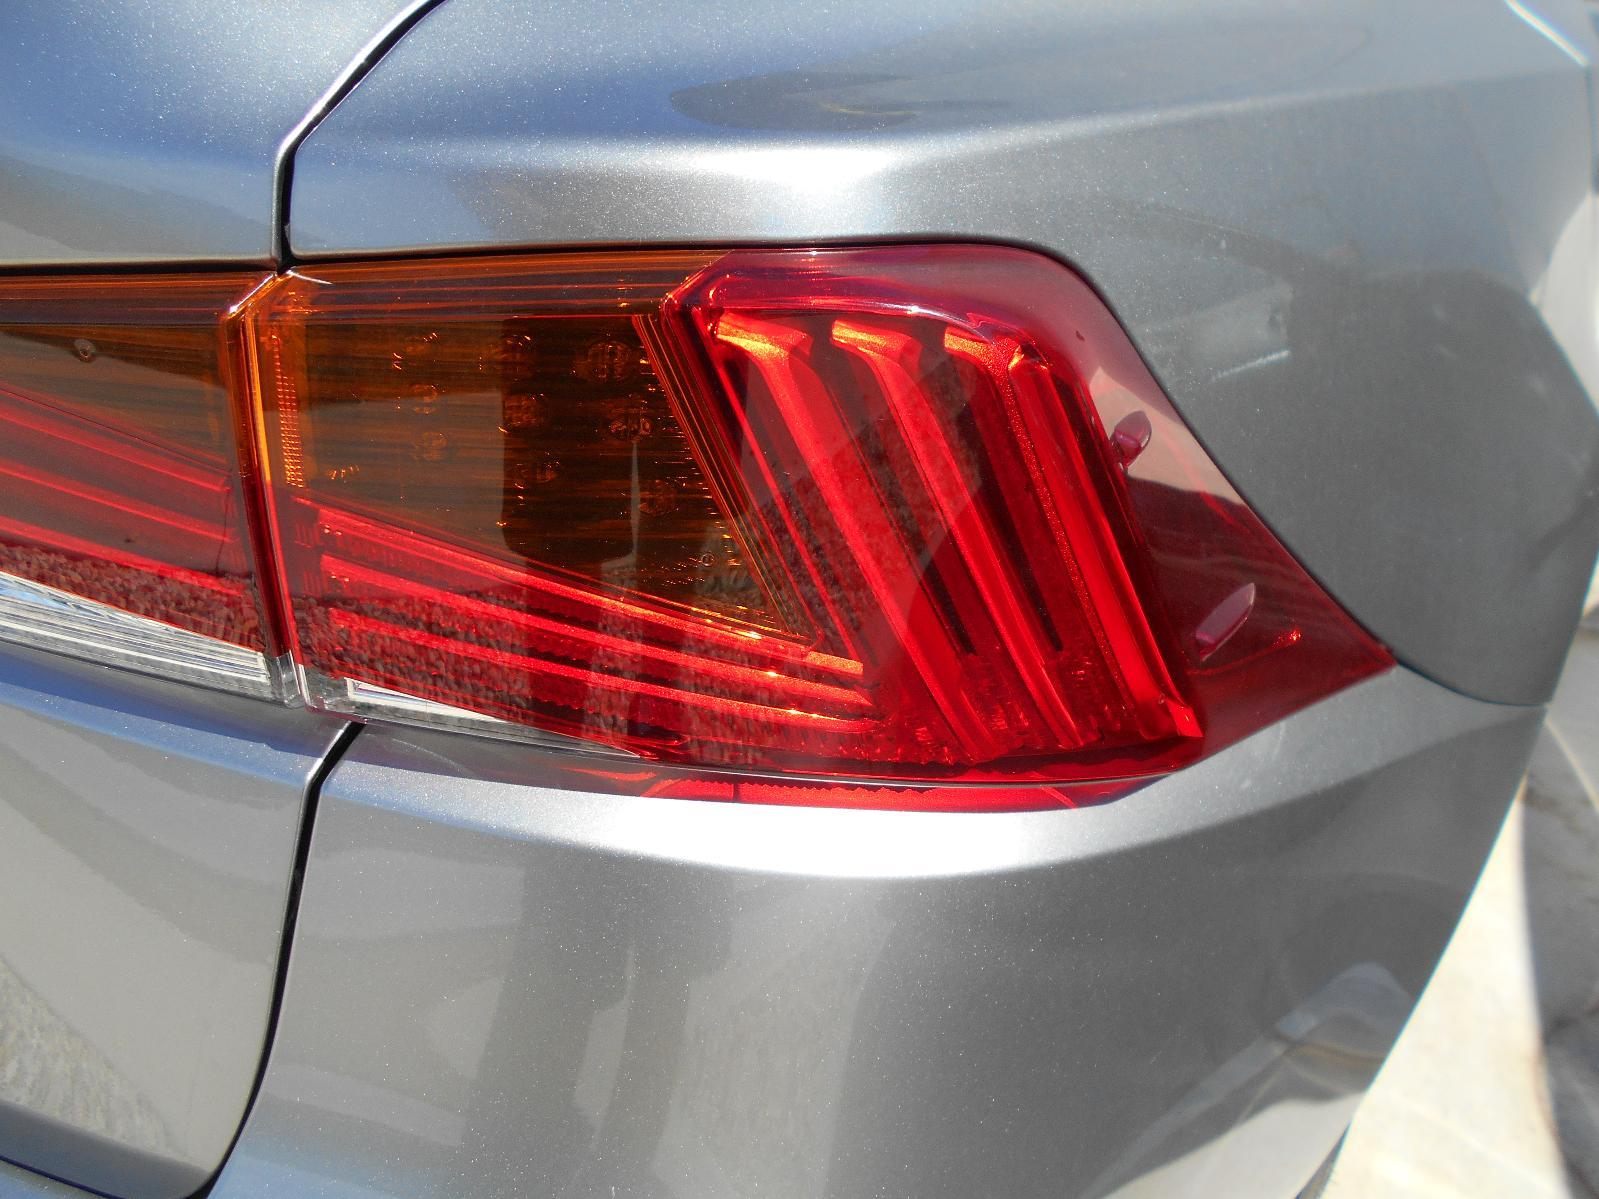 LEXUS IS, Right Taillight, IS200t/IS250/IS300H/IS350, XE30, 07/13-